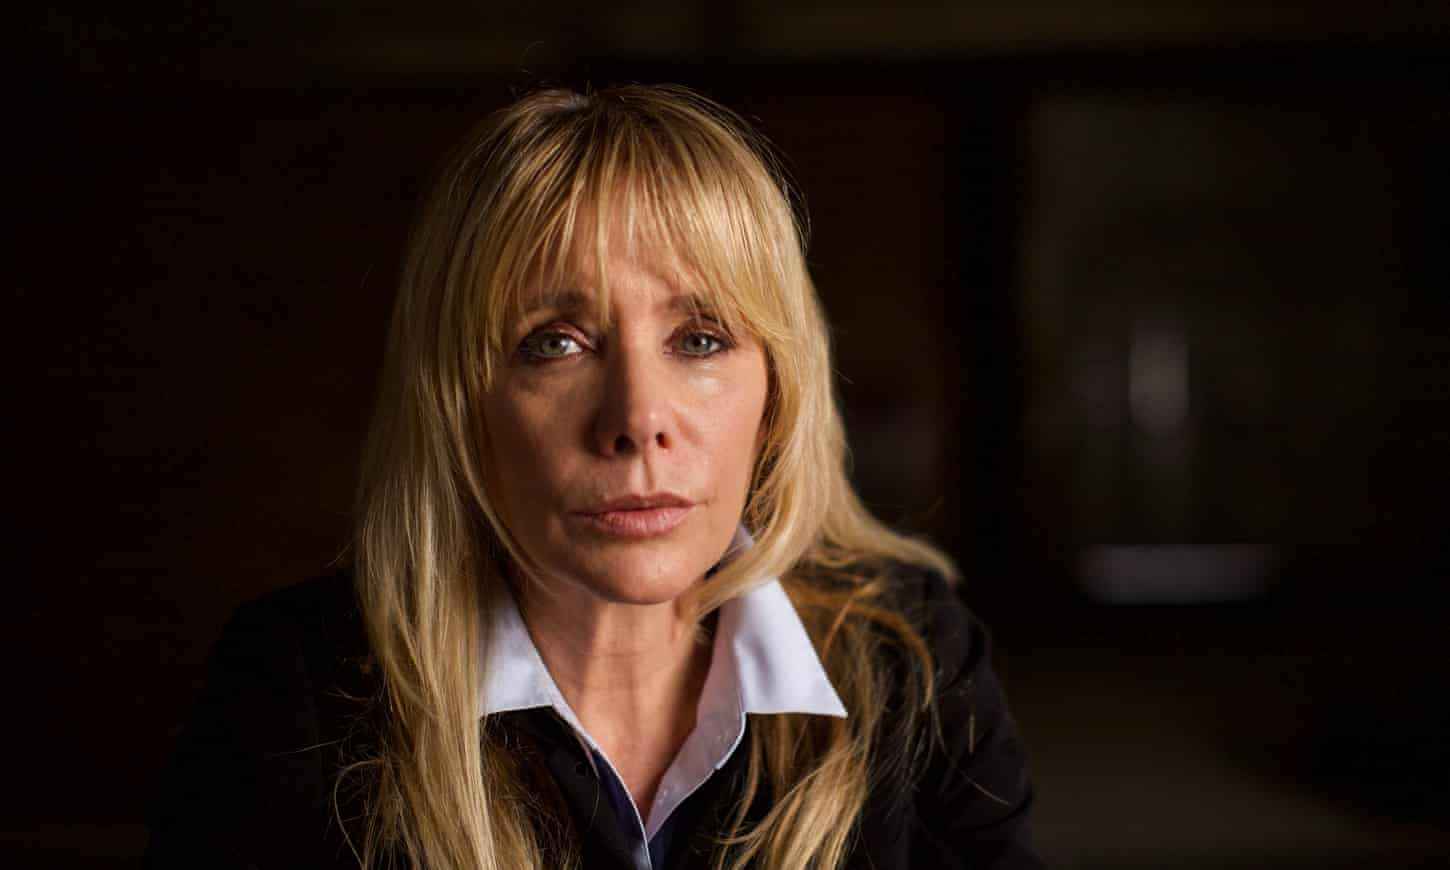 Rosanna Arquette: 'They said I was a pain in the ass. It's not true'